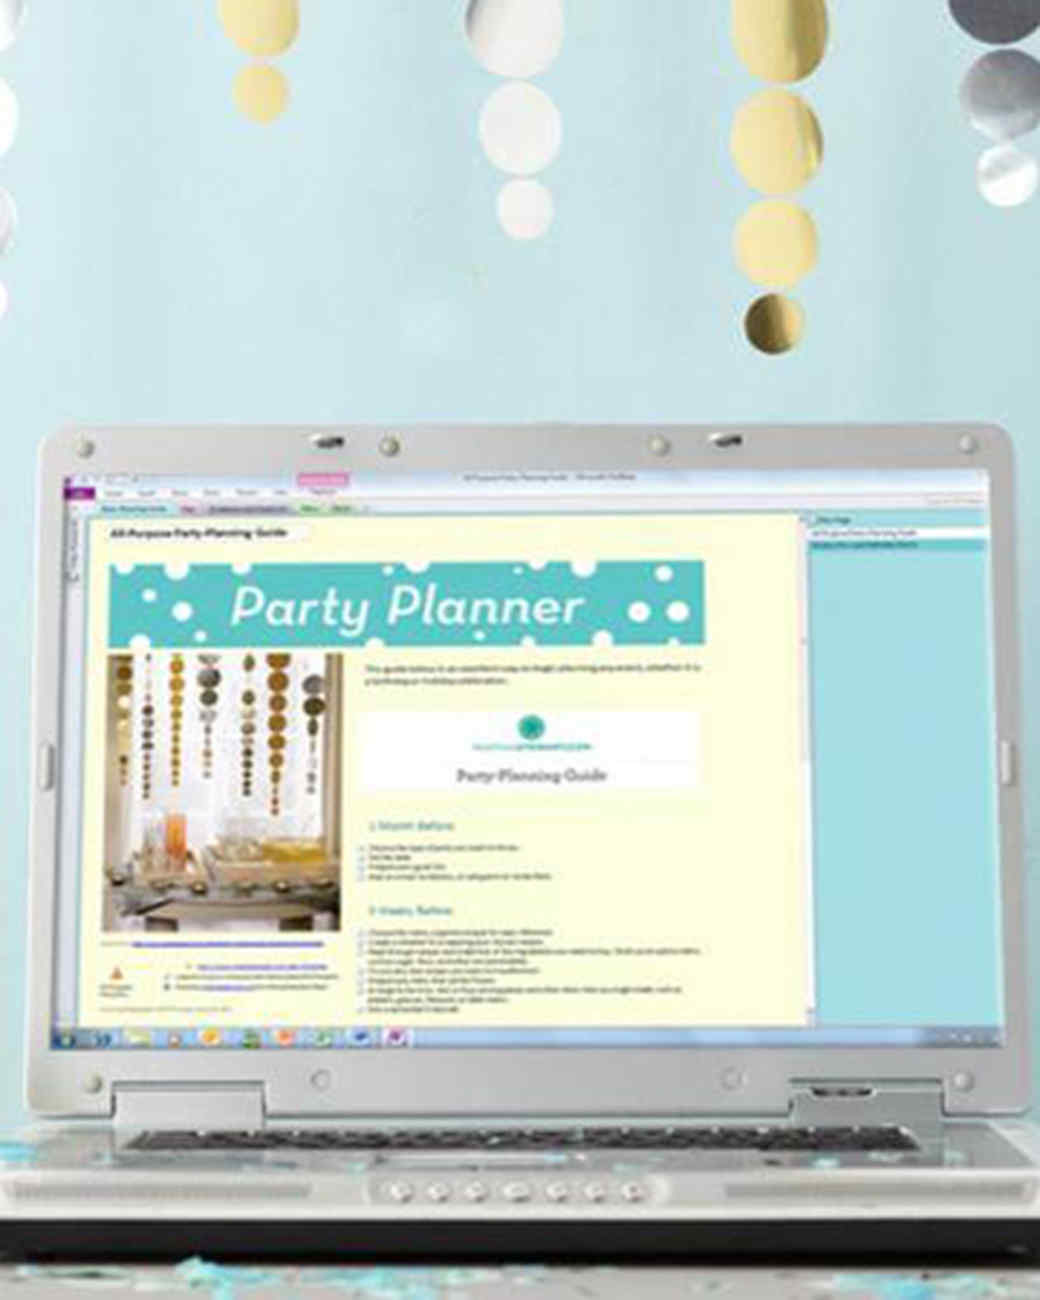 20110126_microsoft_party_planner.jpg